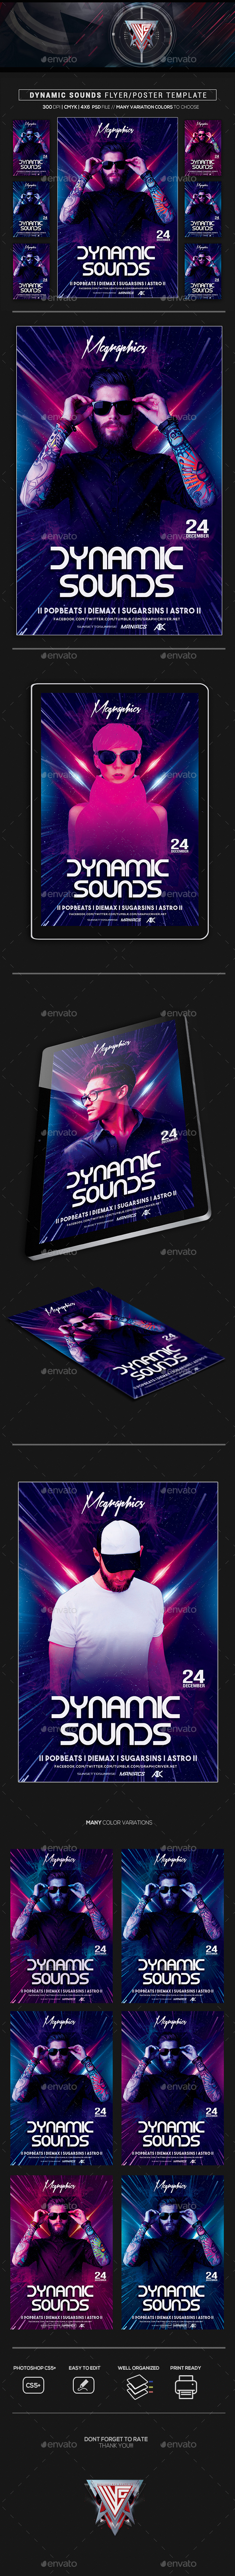 Dynamic Sounds Flyer/Poster Template - Events Flyers